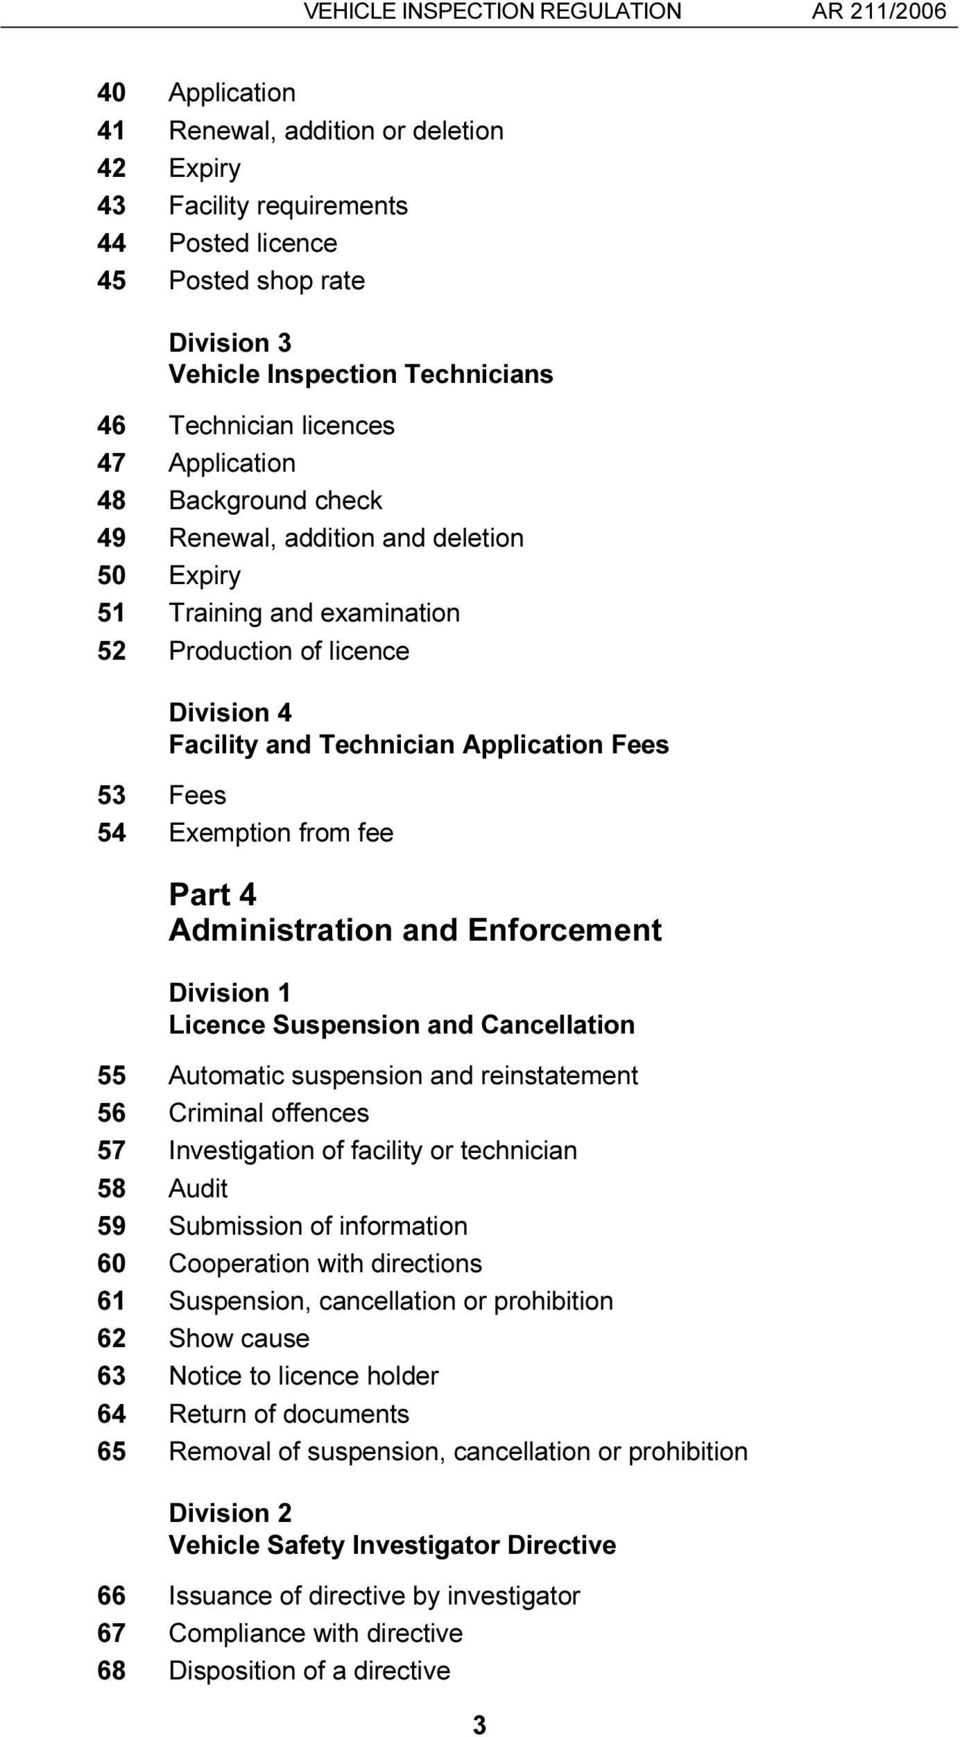 Fees 53 Fees 54 Exemption from fee Part 4 Administration and Enforcement Division 1 Licence Suspension and Cancellation 55 Automatic suspension and reinstatement 56 Criminal offences 57 Investigation